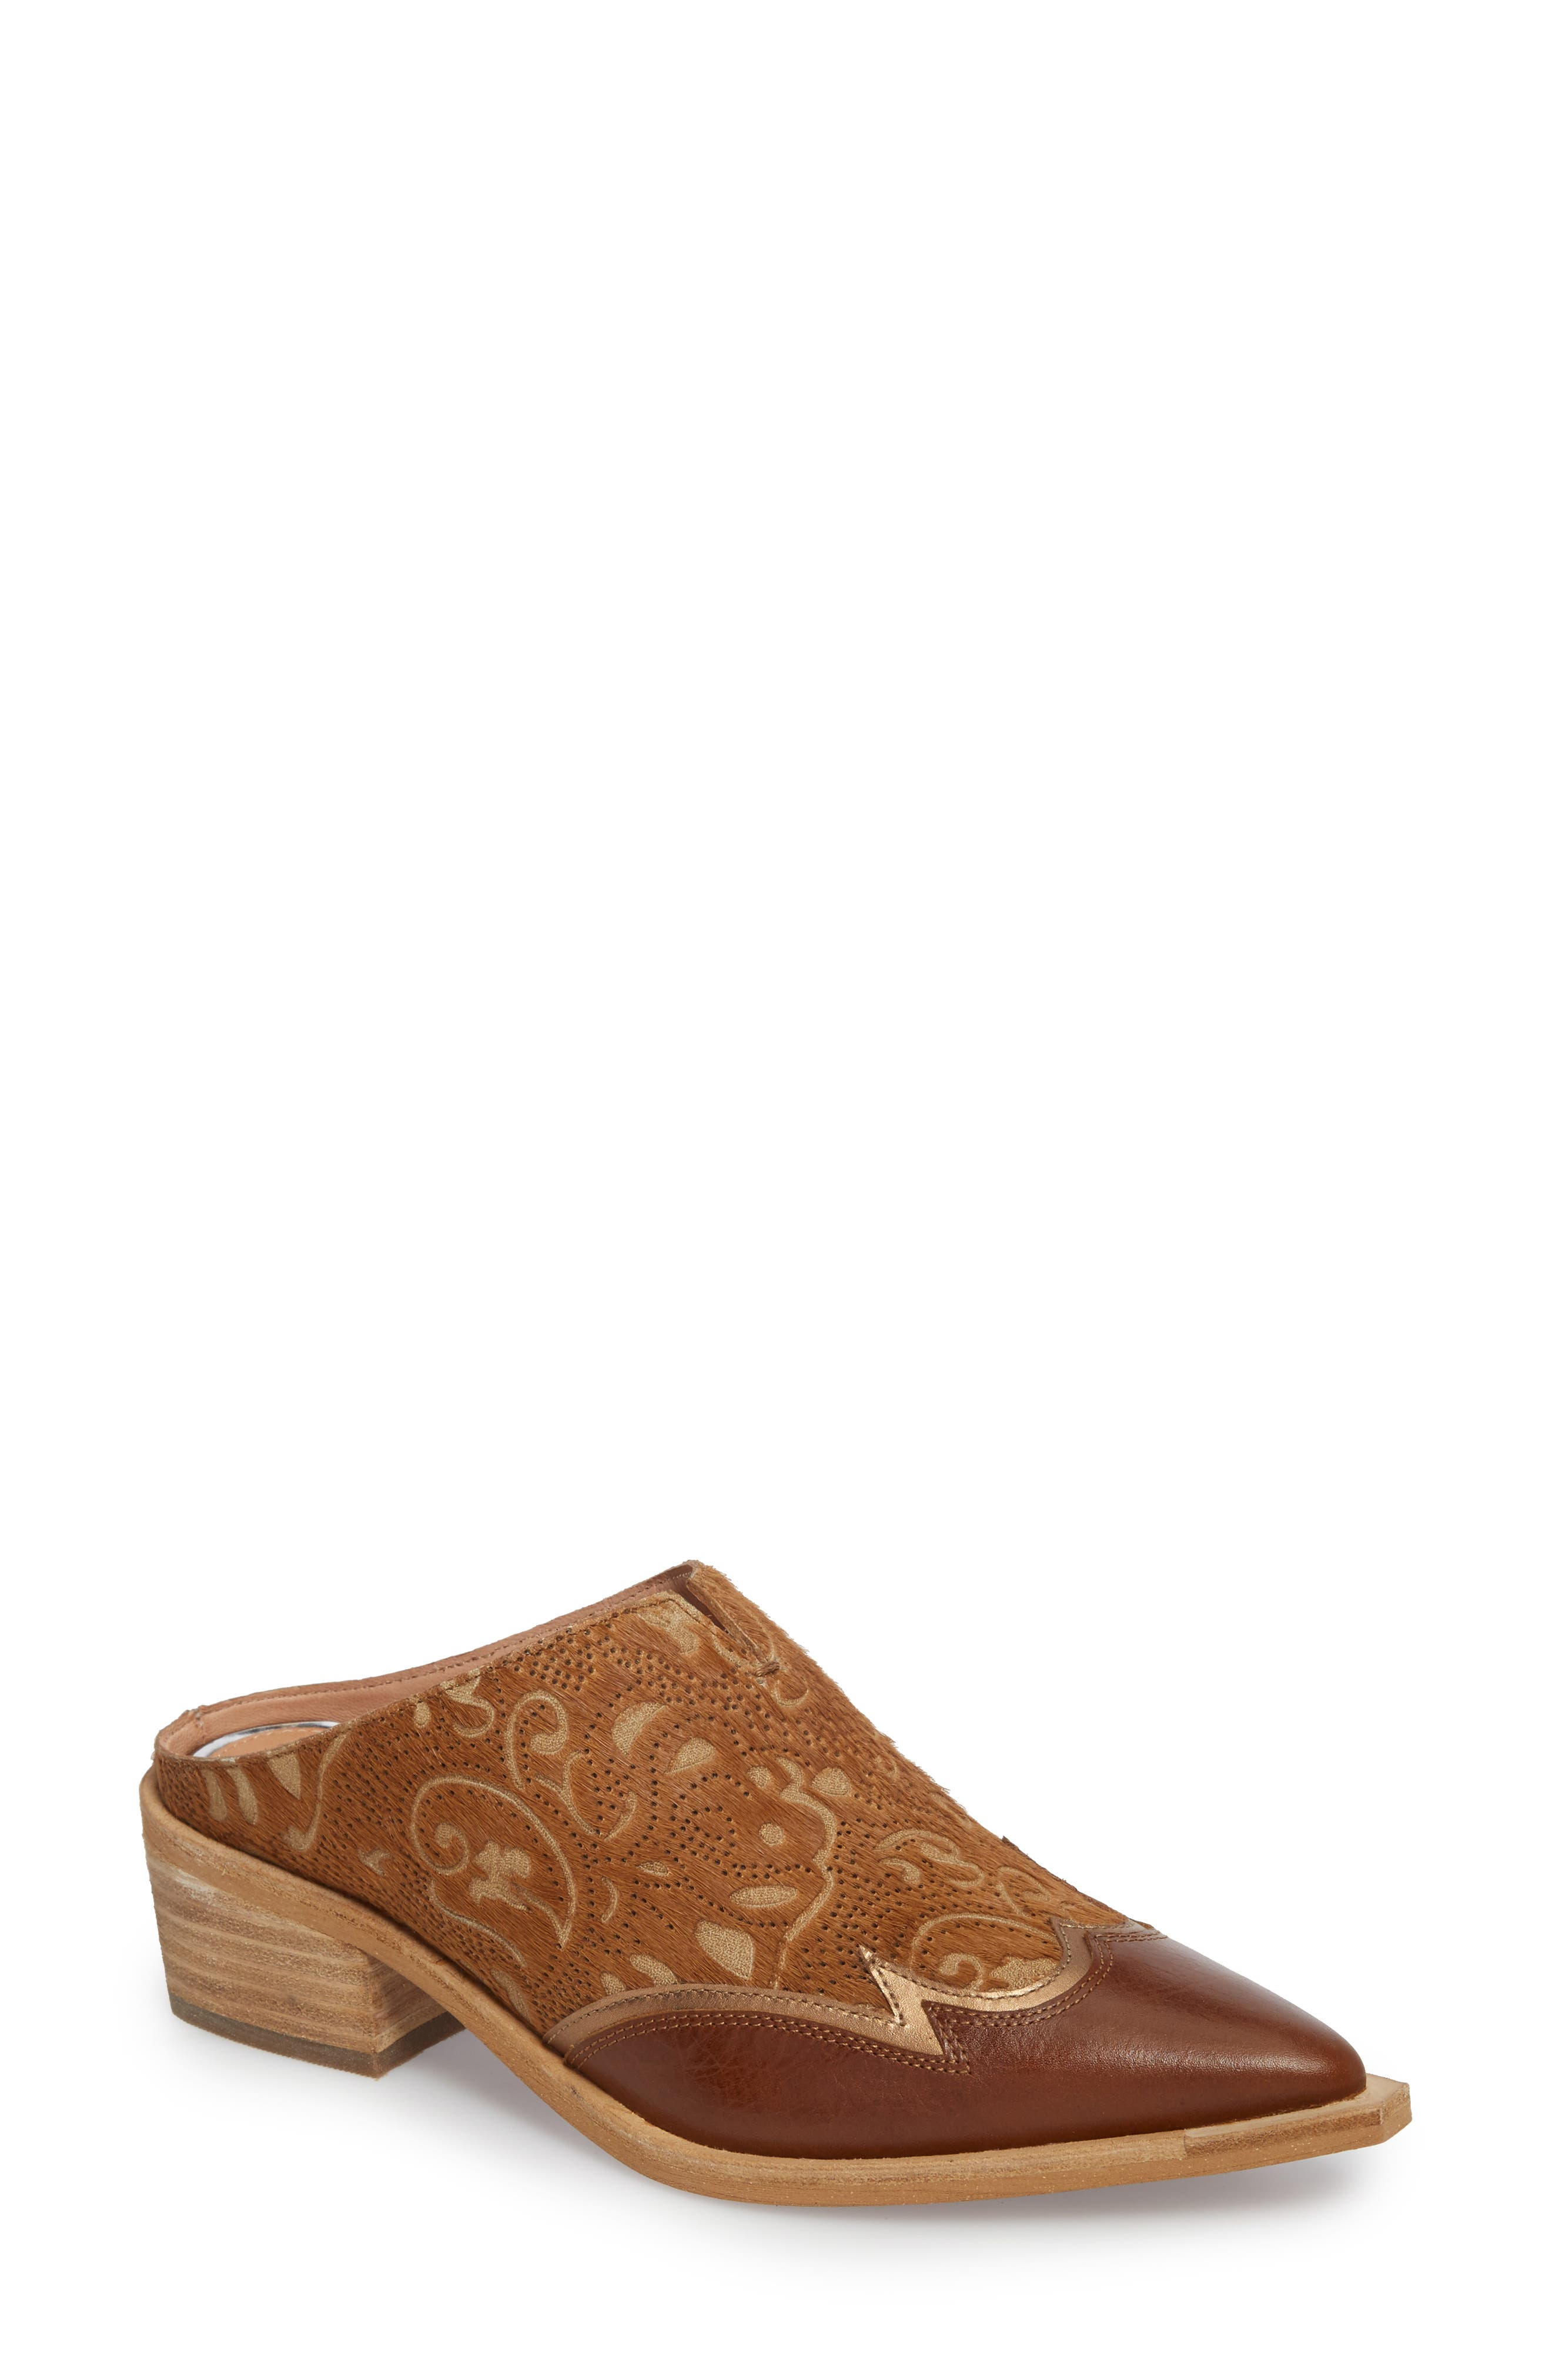 Waylon Genuine Calf Hair Western Mule,                             Main thumbnail 1, color,                             Camel Leather